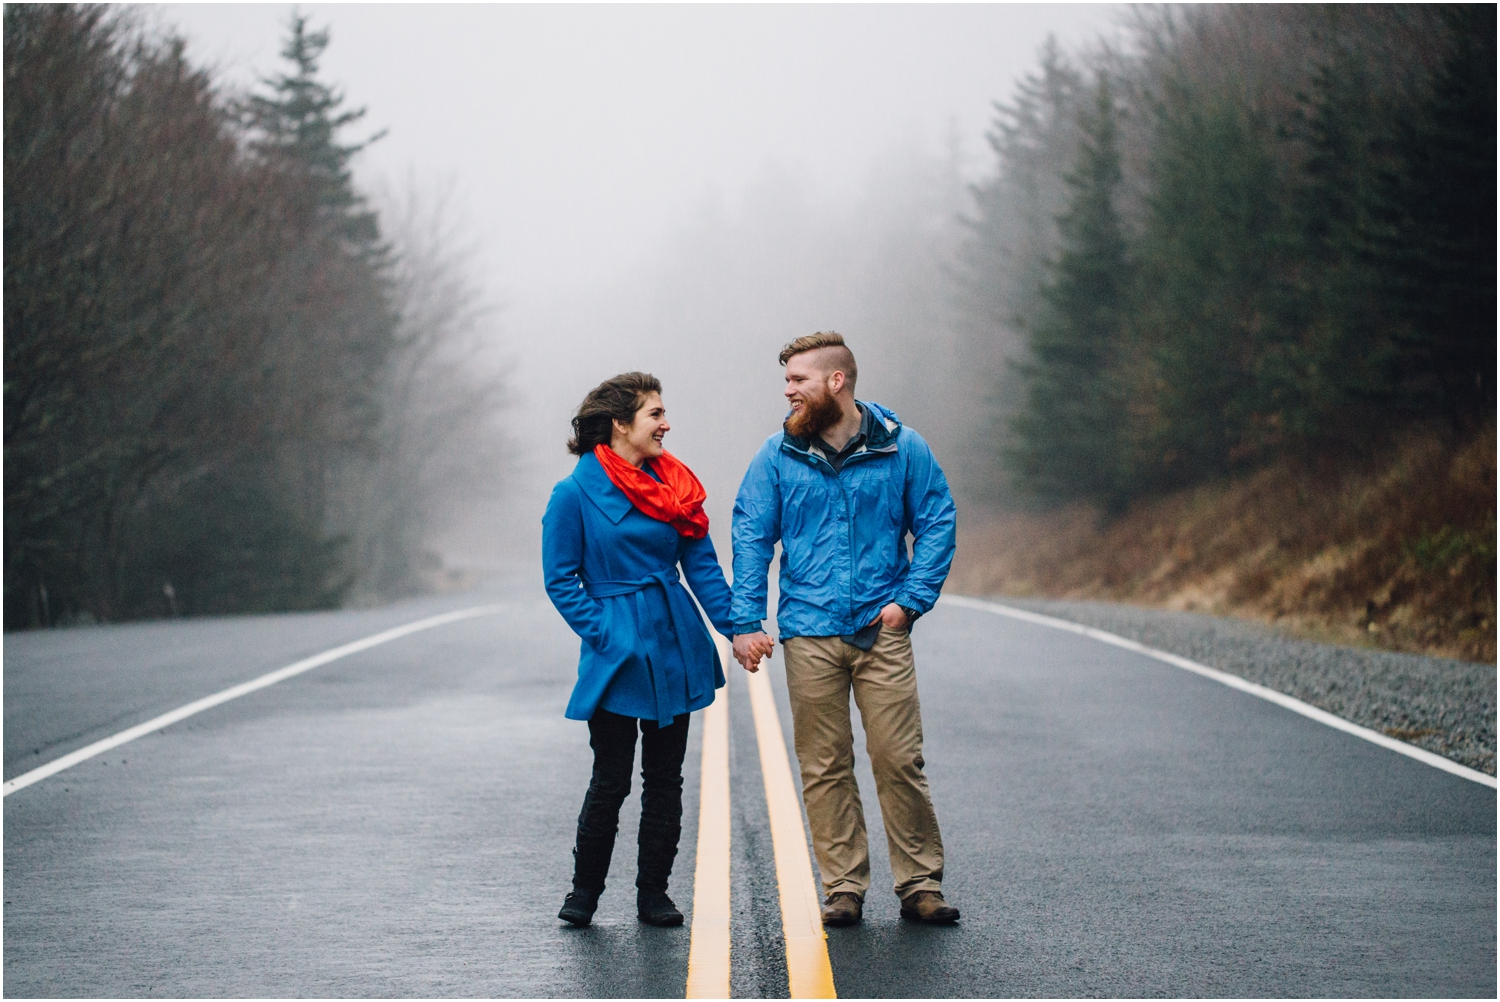 katy-sergent-photography-grayson-highlands-engagement-session-mouth-of-wilson-virginia-damascus-appalachian-trail-tennessee-wedding-elopement_0016.jpg